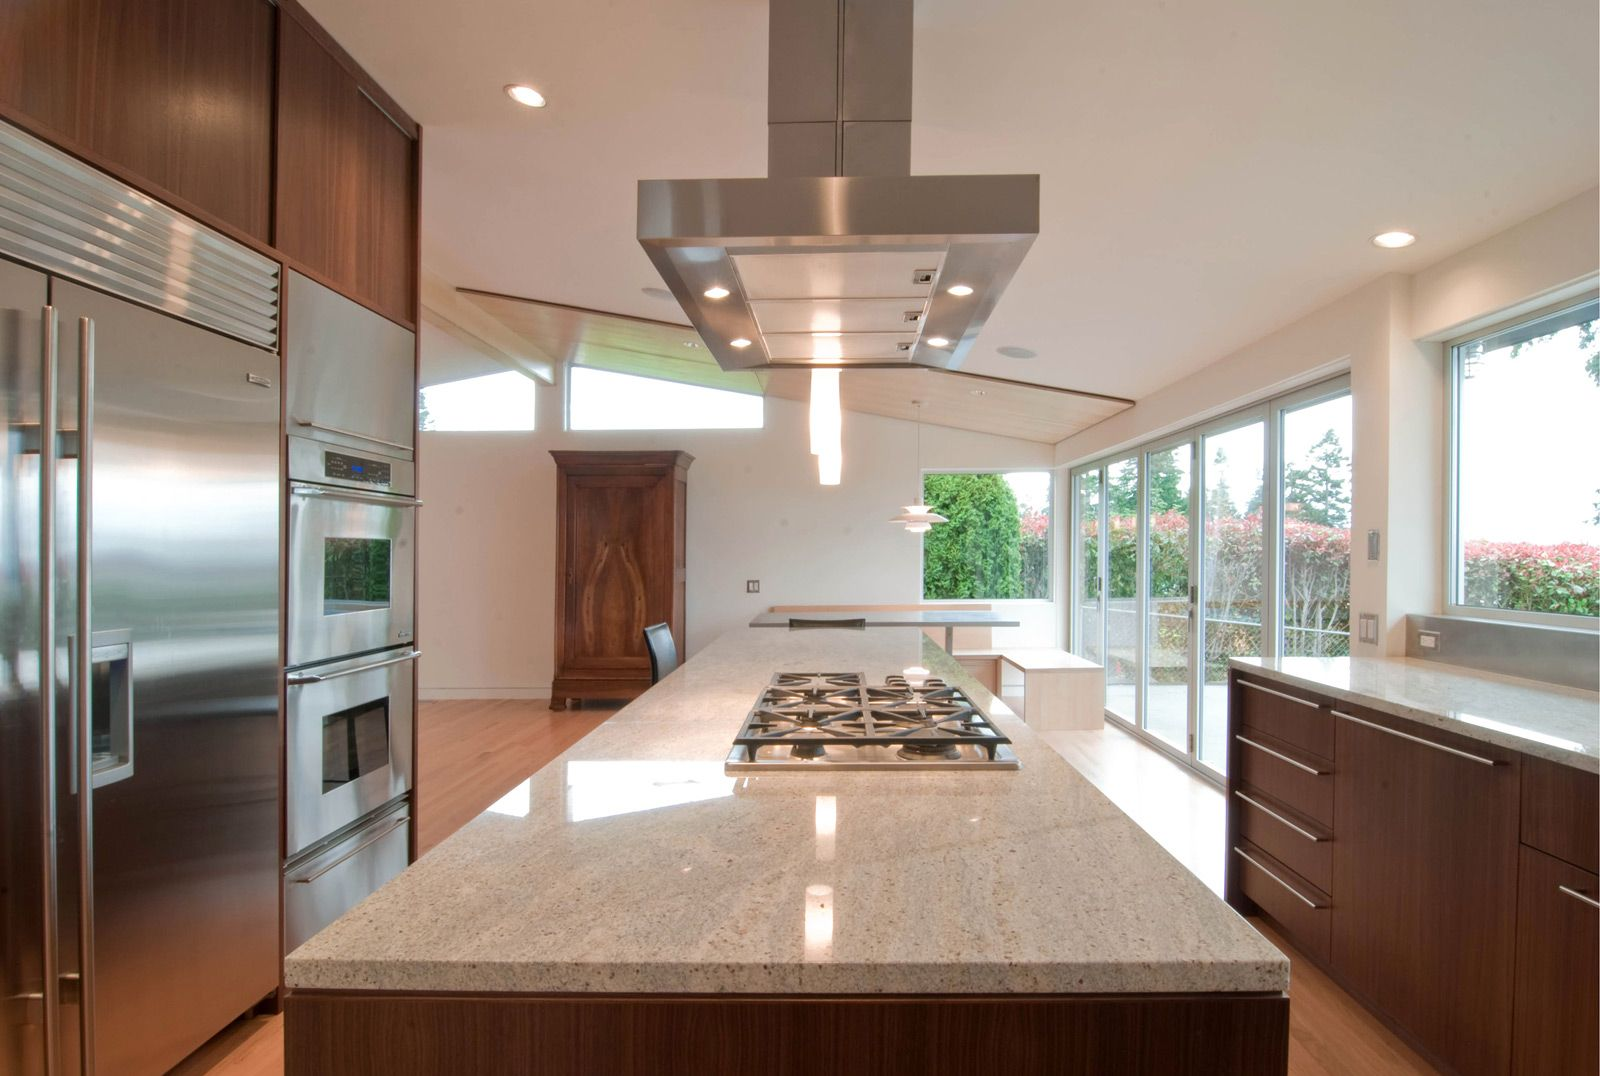 Kitchen Exhaust Fan For Kitchen To Provide Better Air Conditionu2026